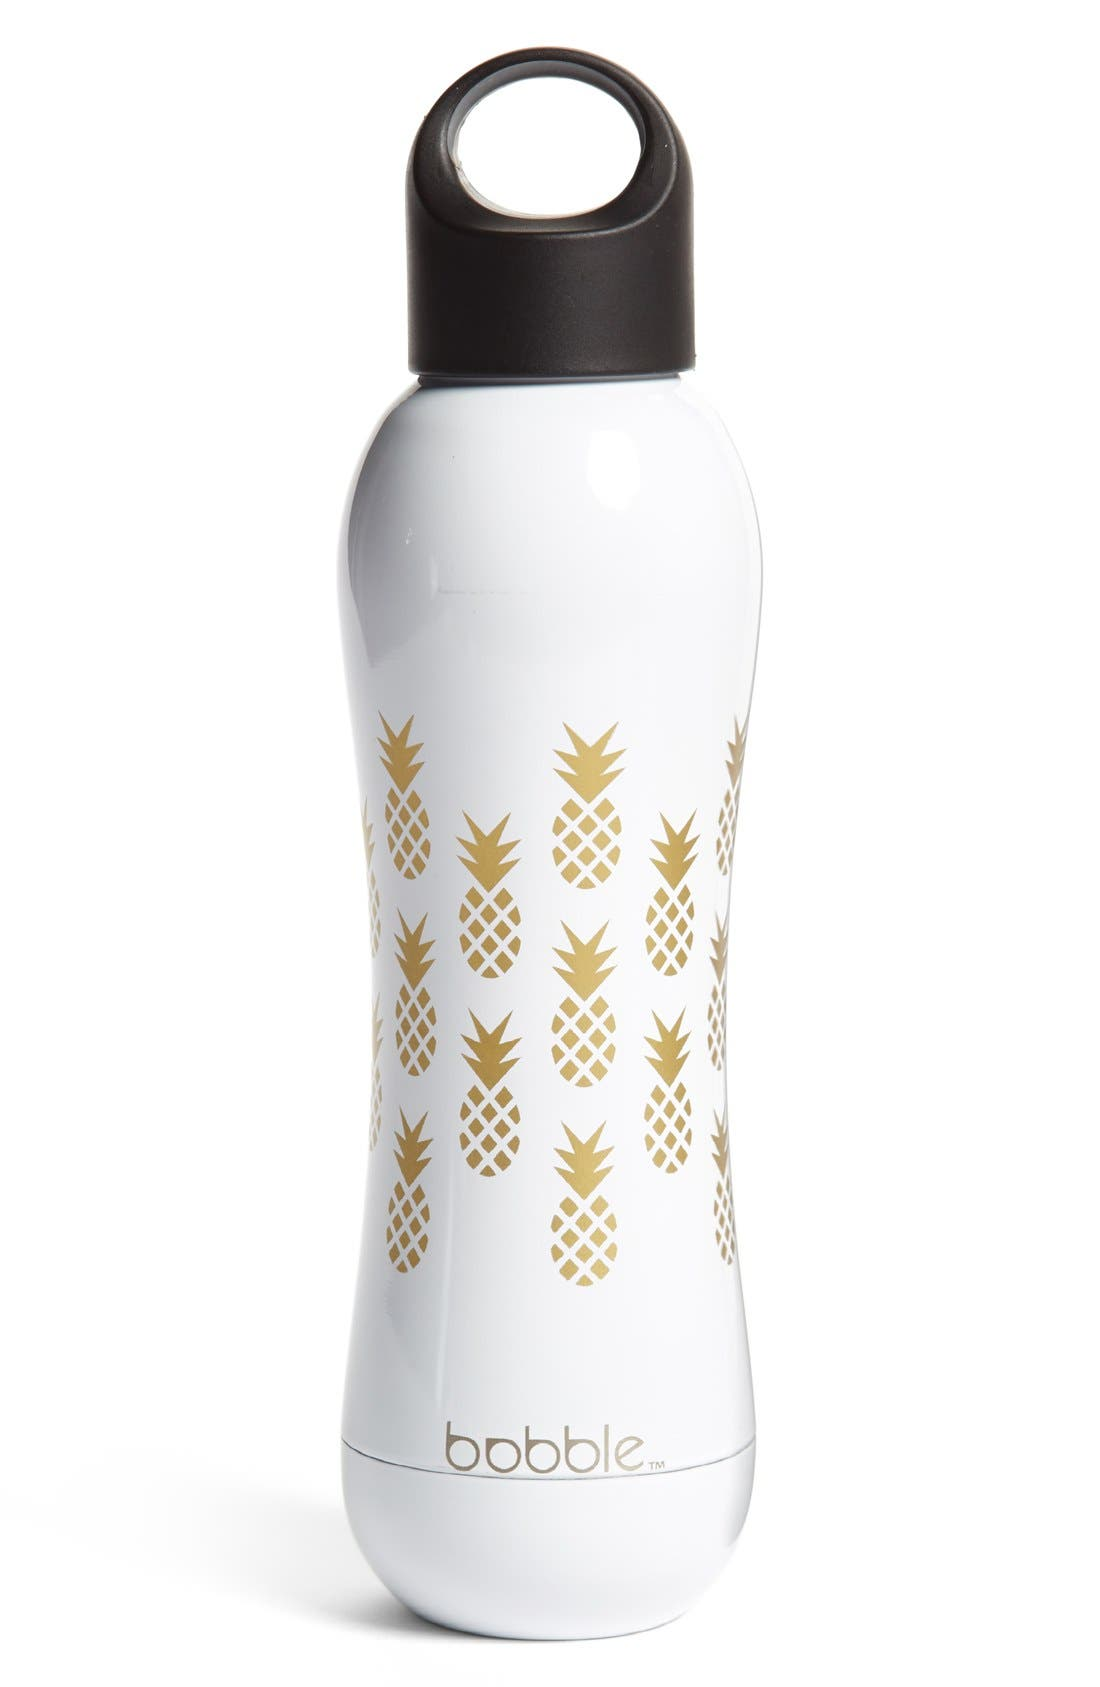 'Pining for You' Stainless Steel Water Bottle,                             Main thumbnail 1, color,                             100